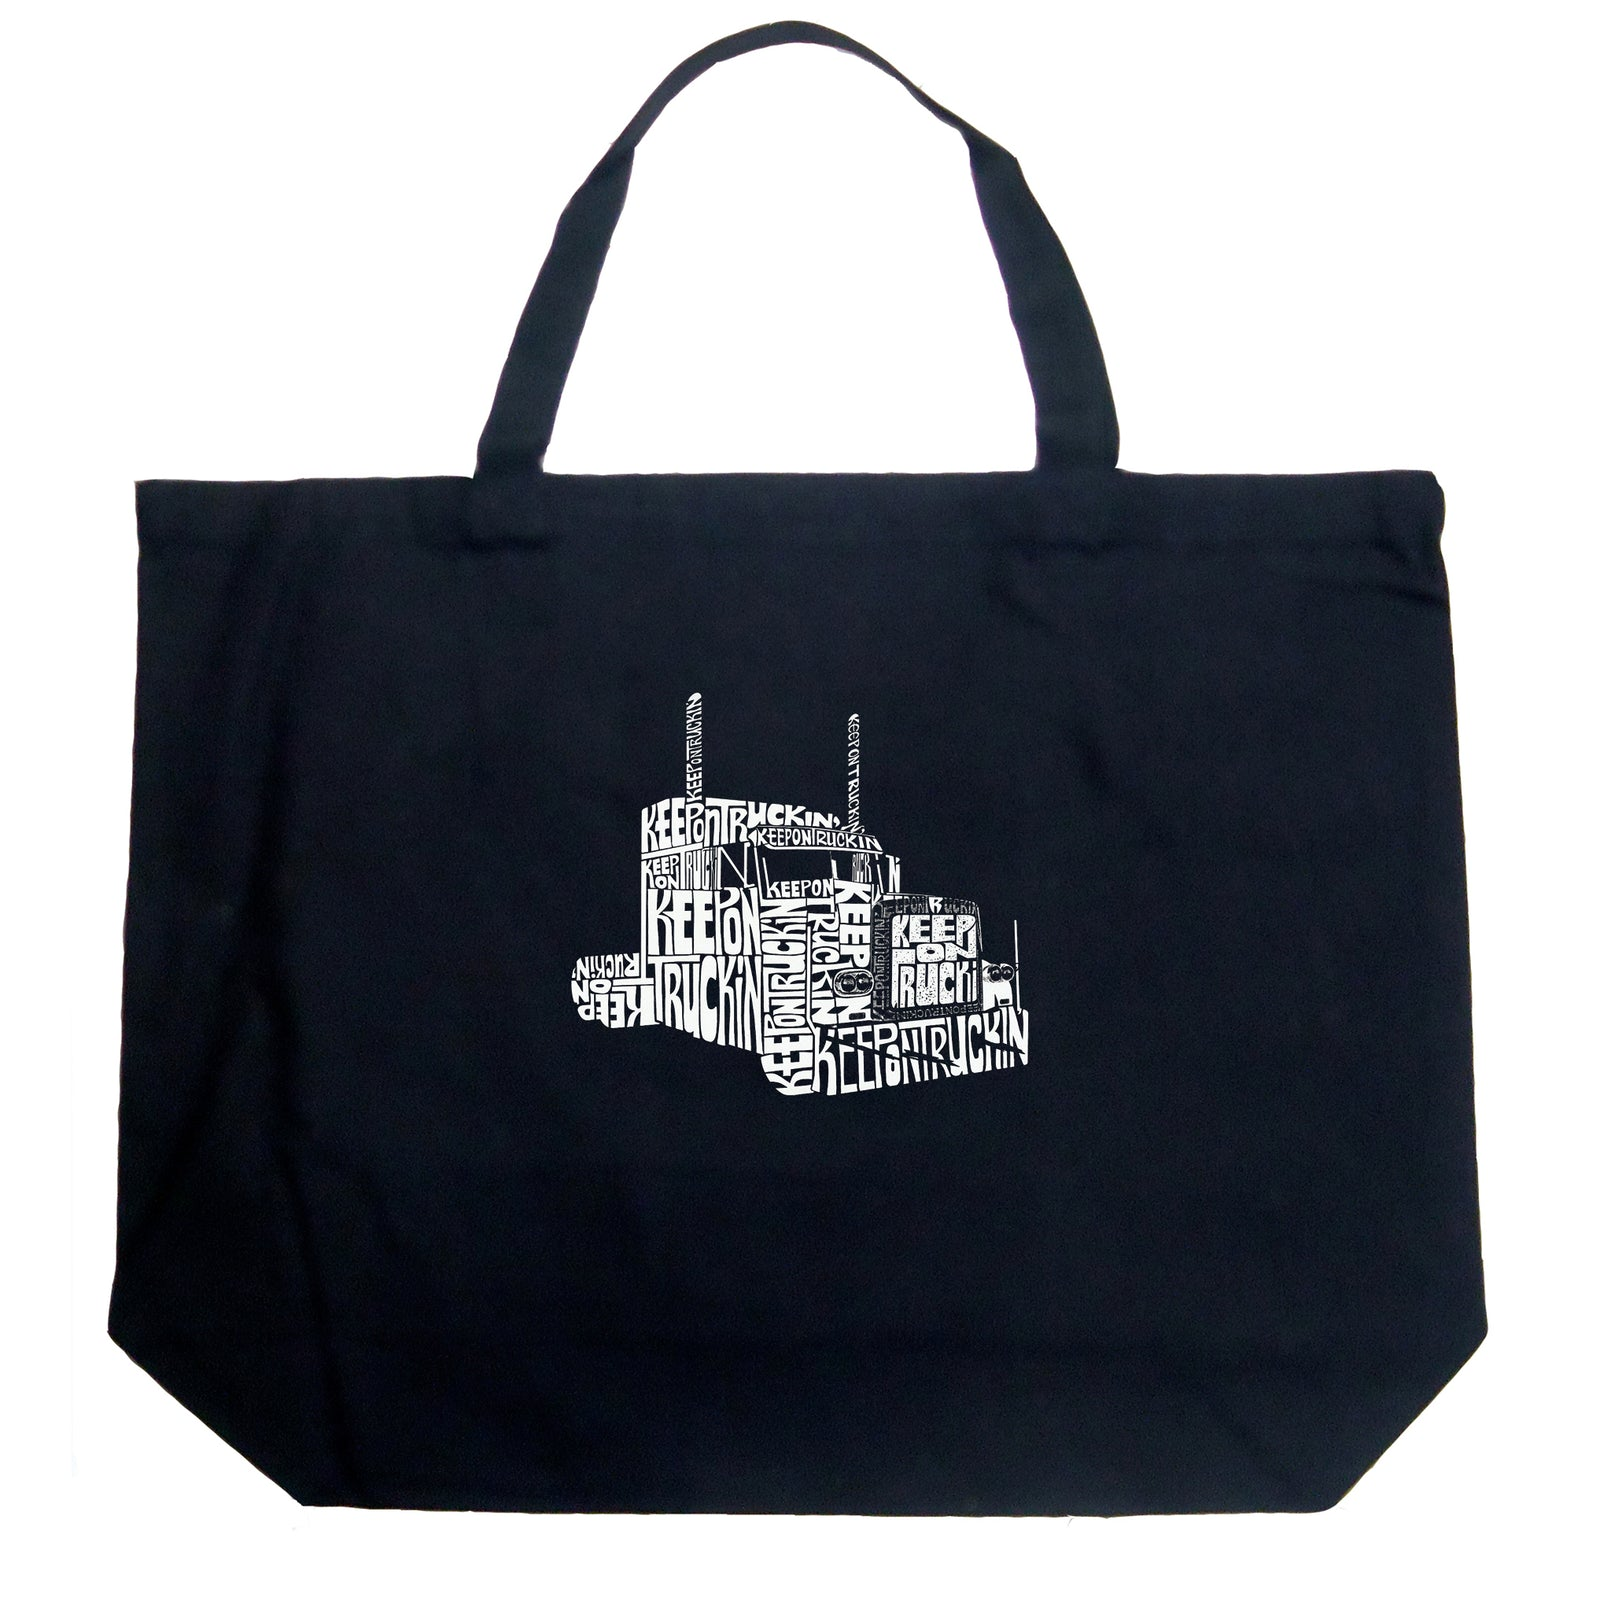 Large Tote Bag - KEEP ON TRUCKIN'